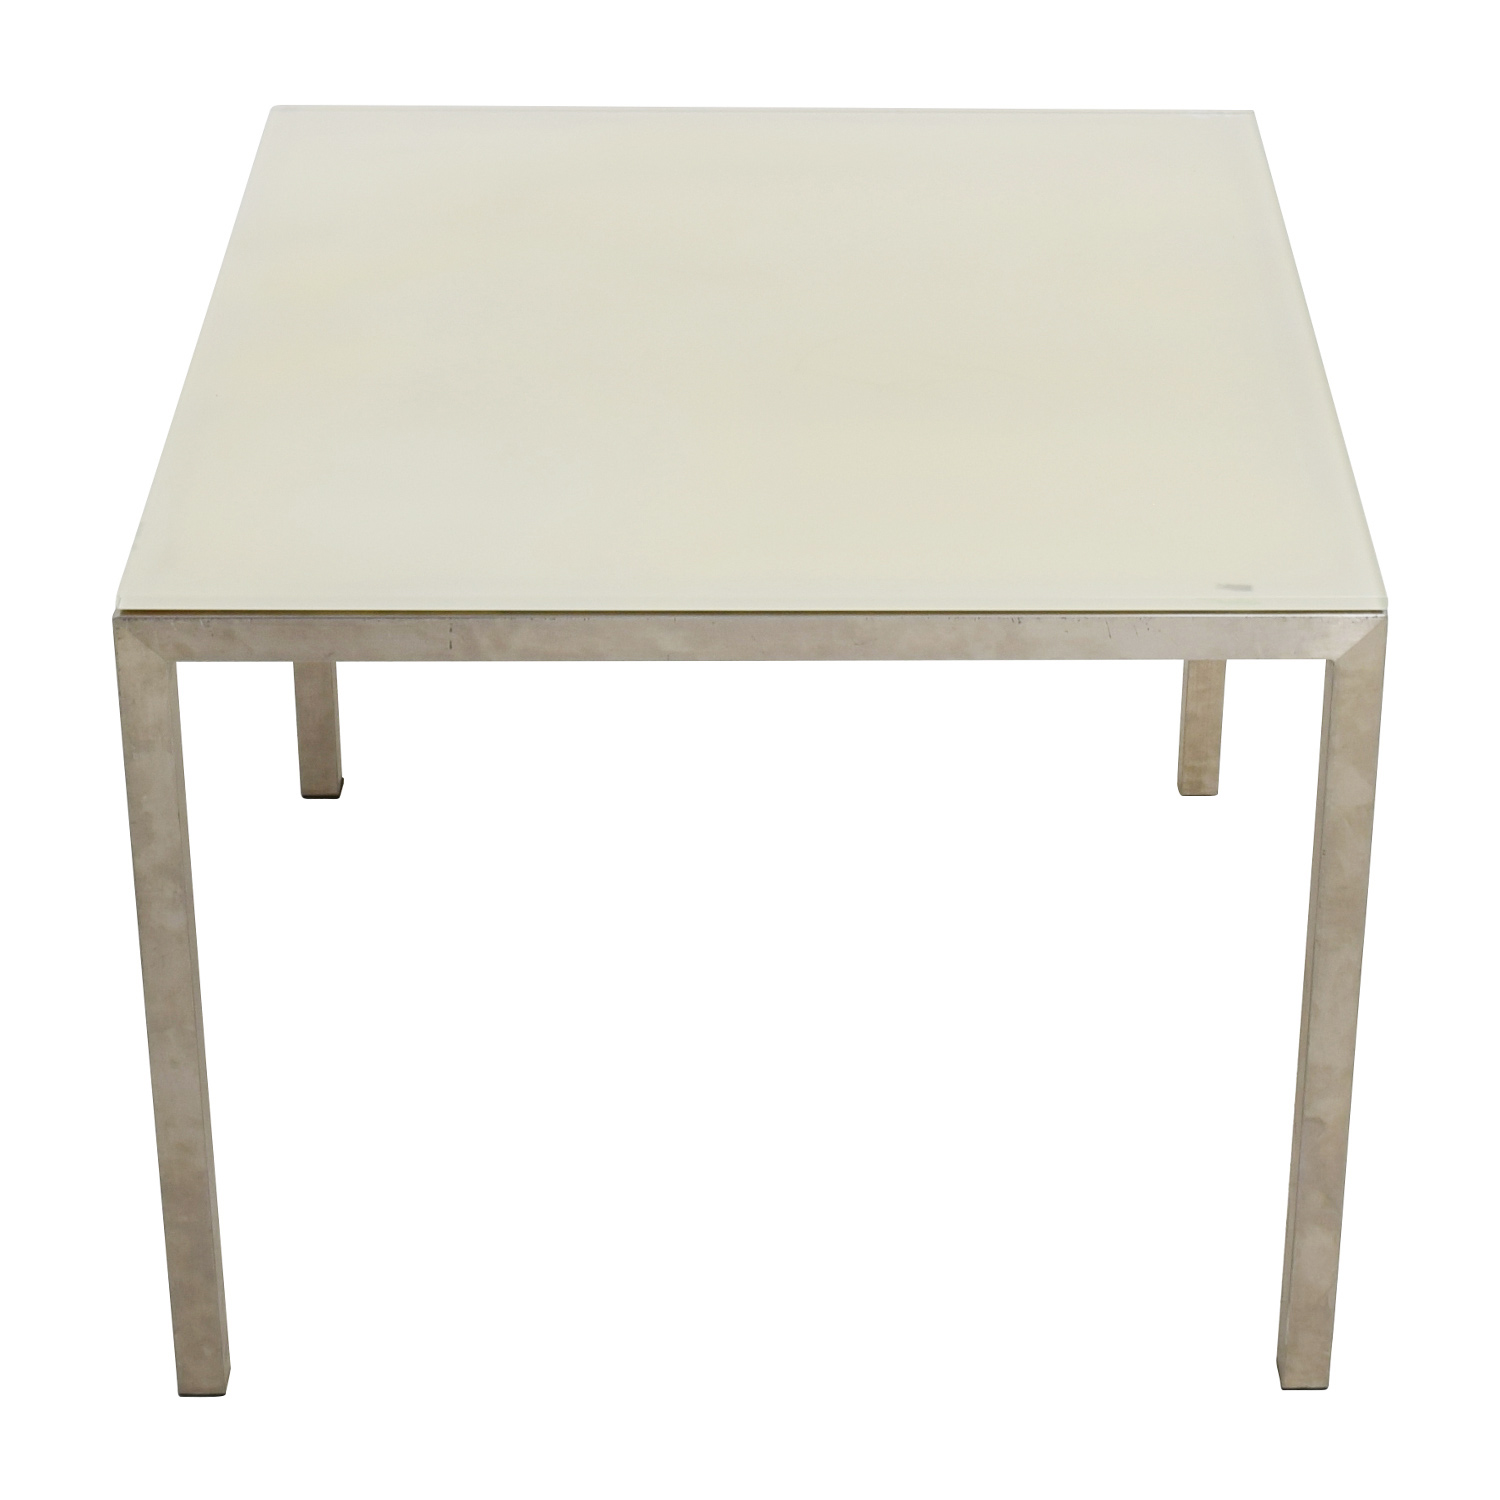 Room & Board Portia White Glass and Stainless Steel Dining Table sale